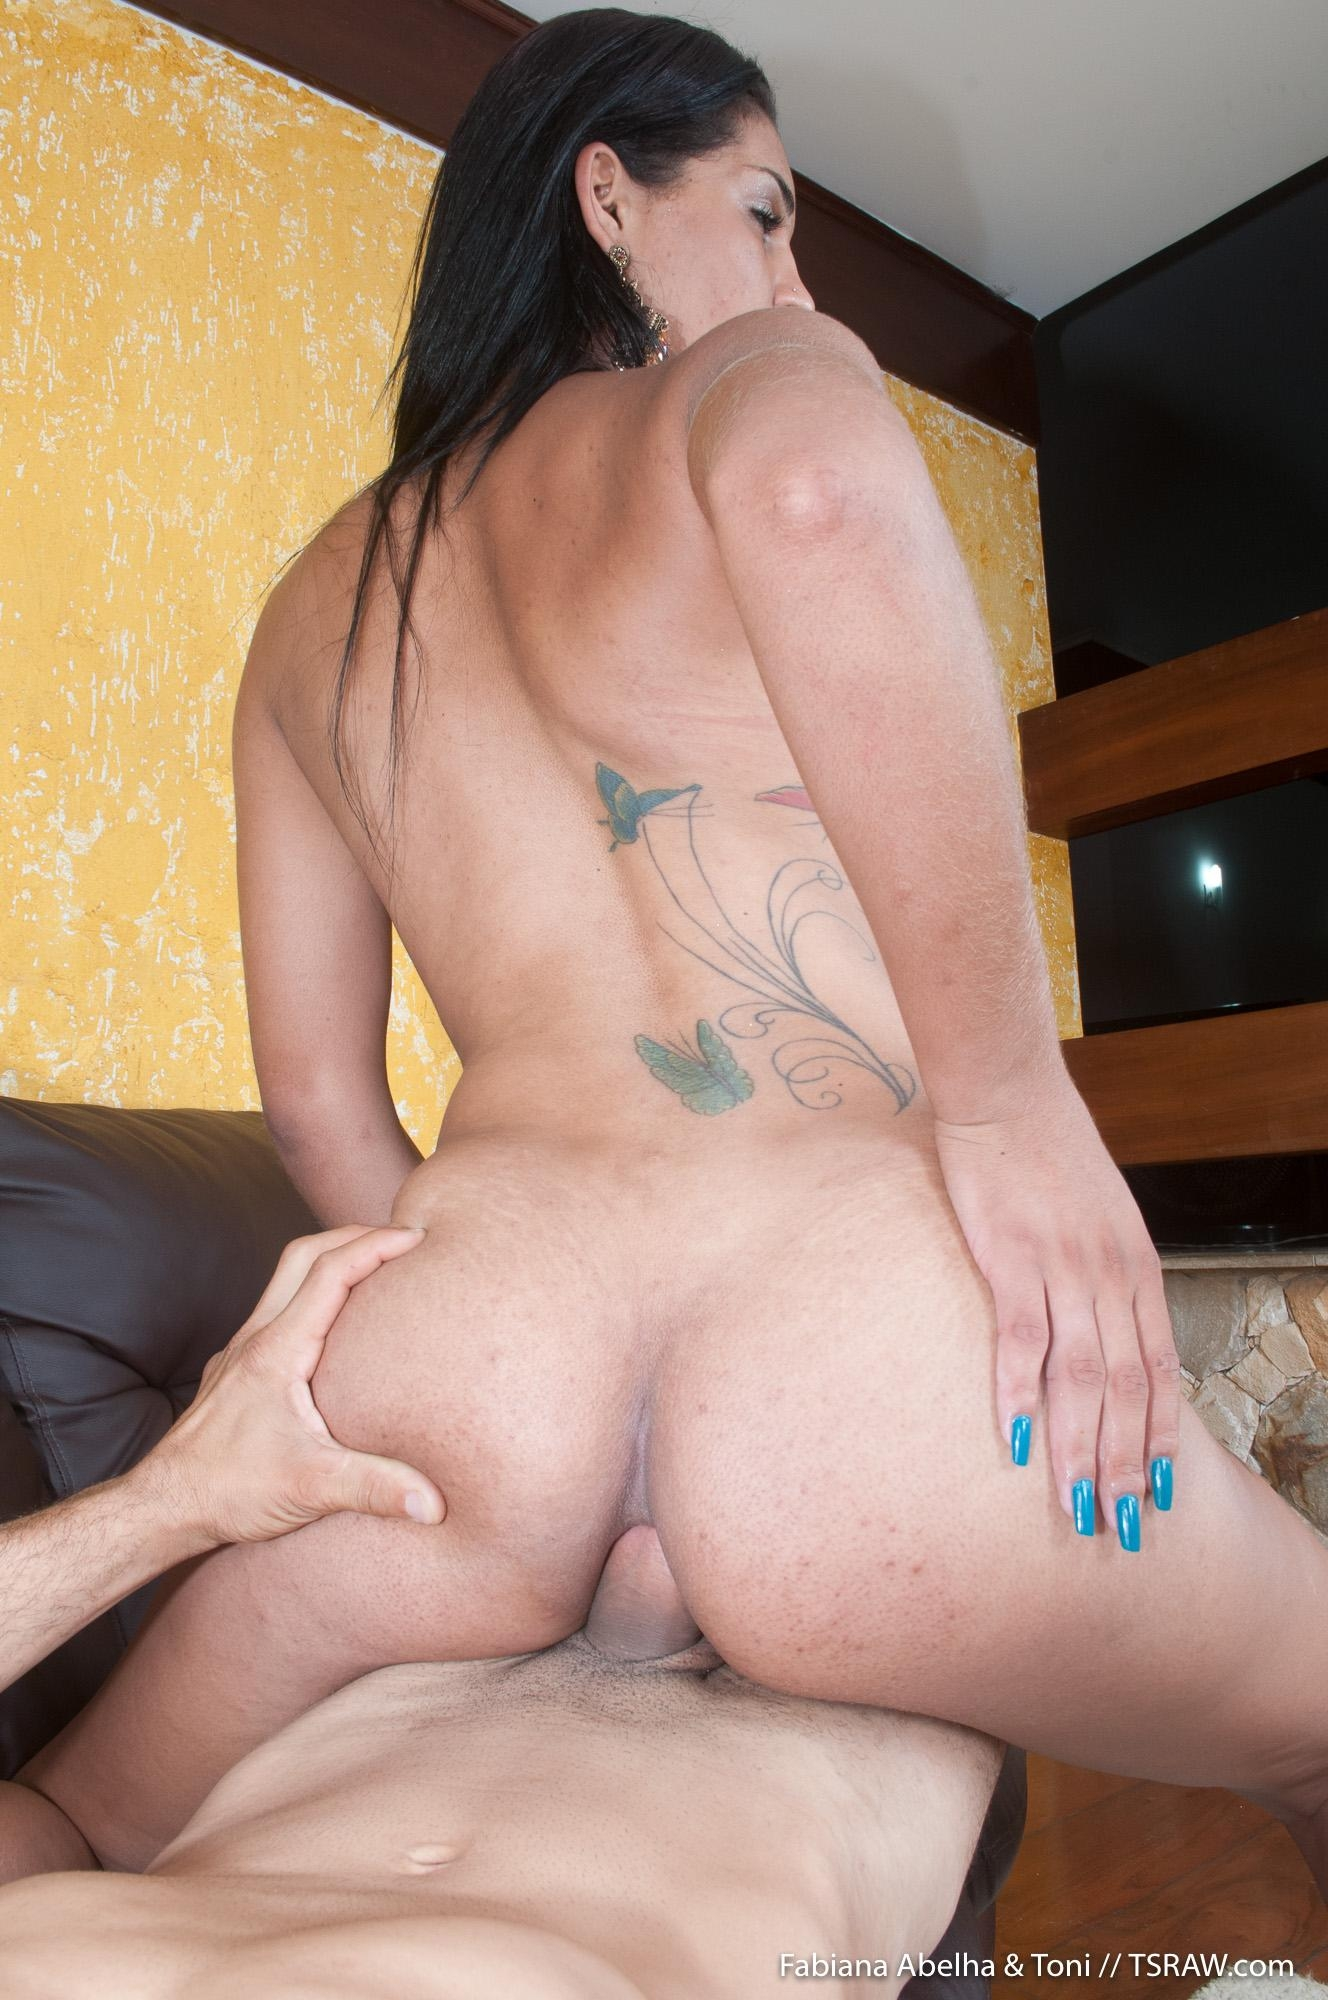 Latina shemale Fabiana Abelha tugs on her cock with a man's dick in her dirty asshole